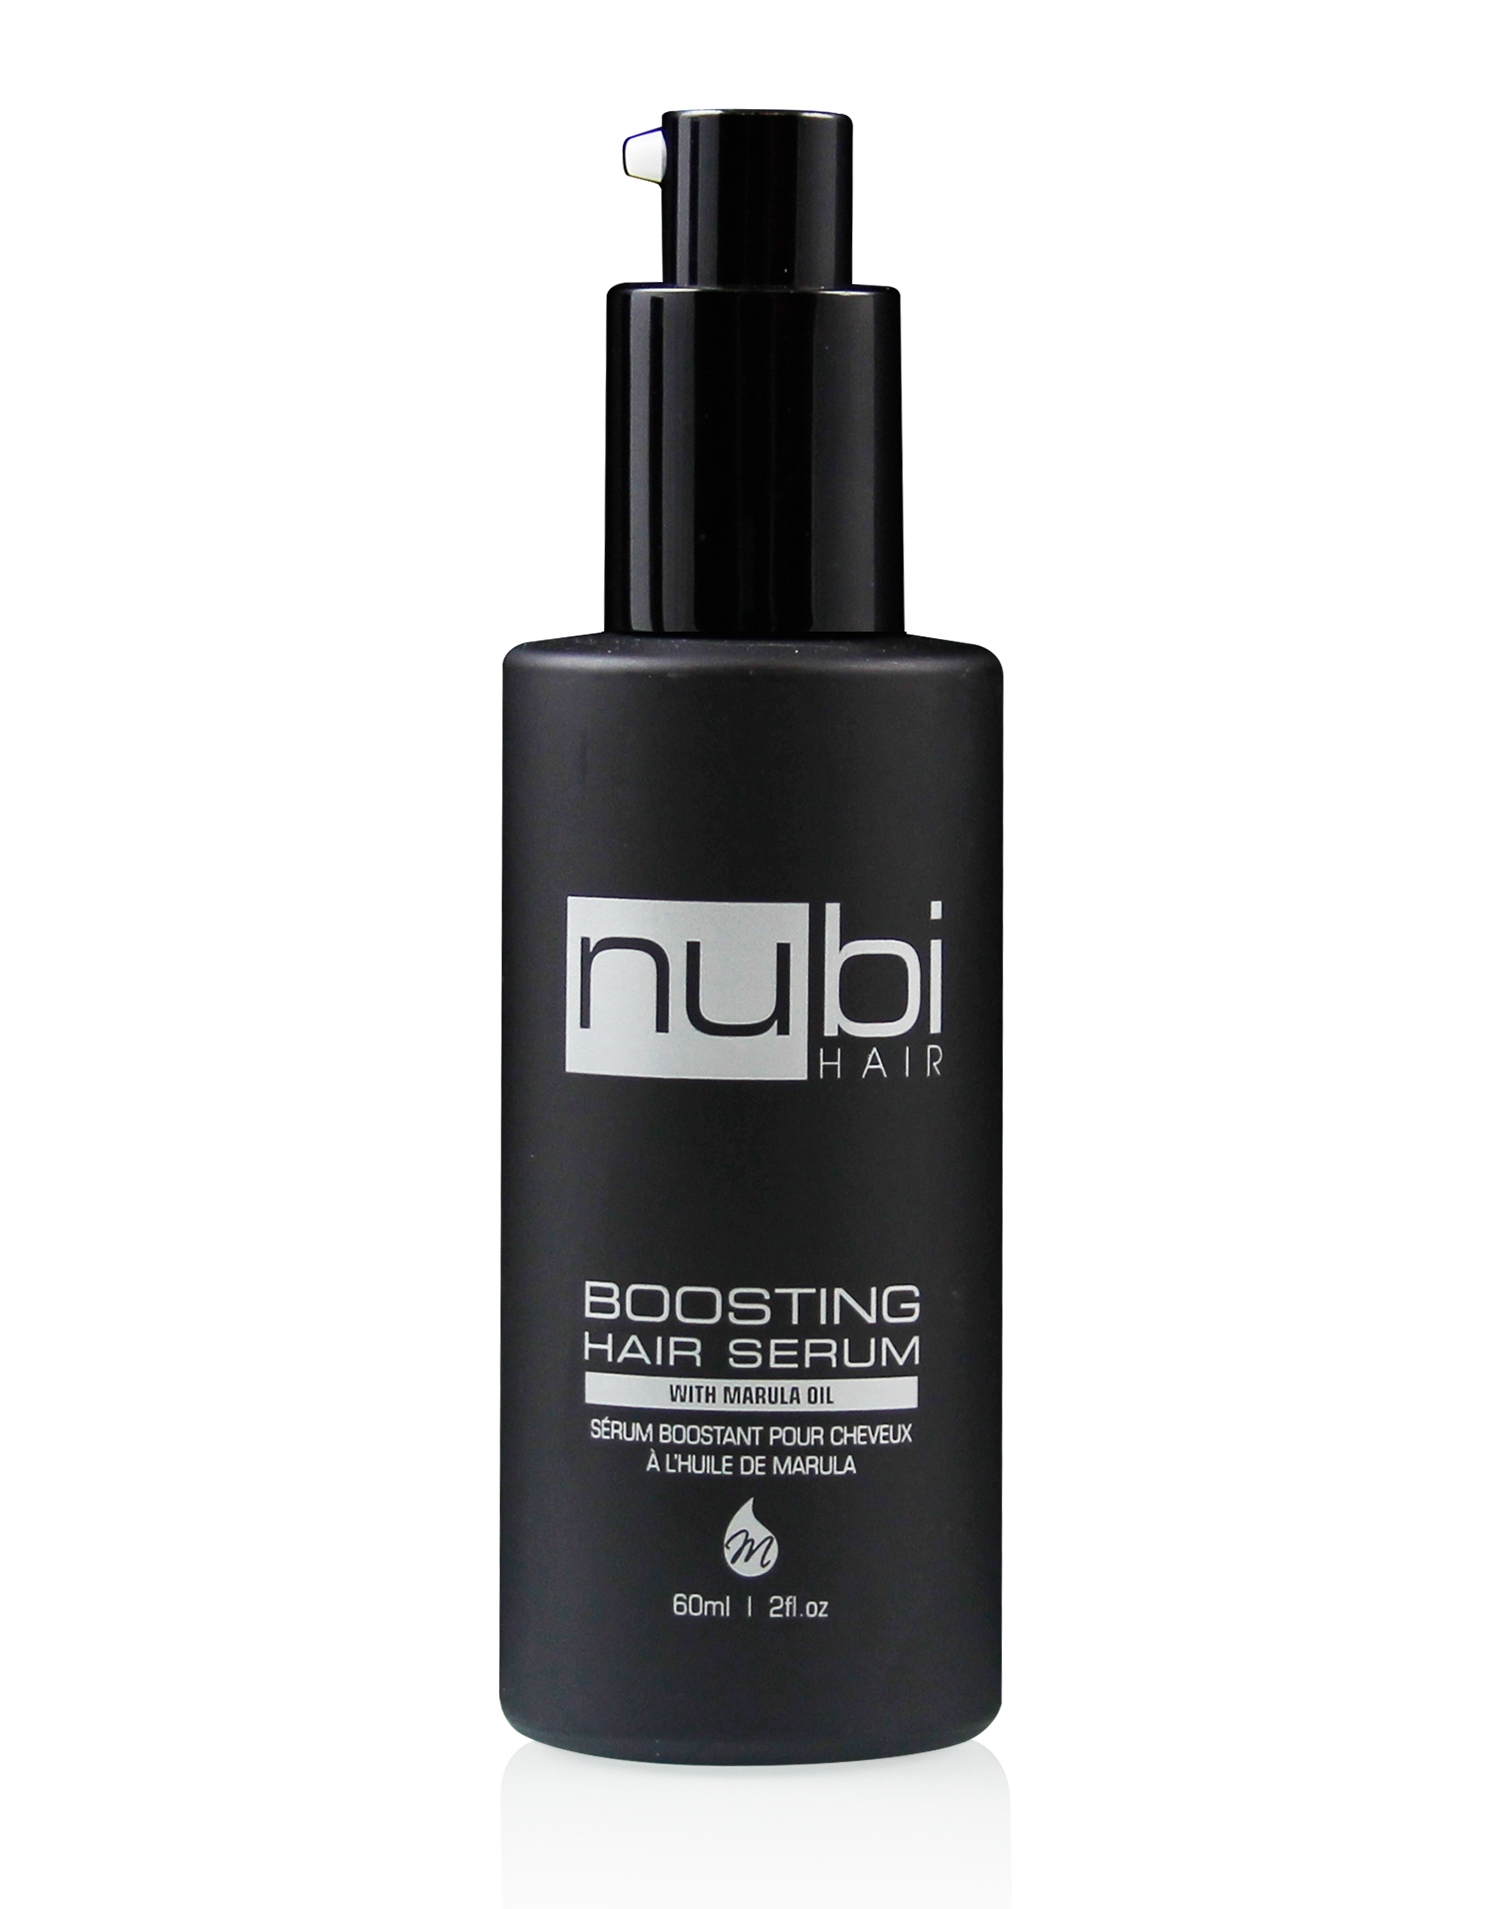 Nubi hair boosting hair serum